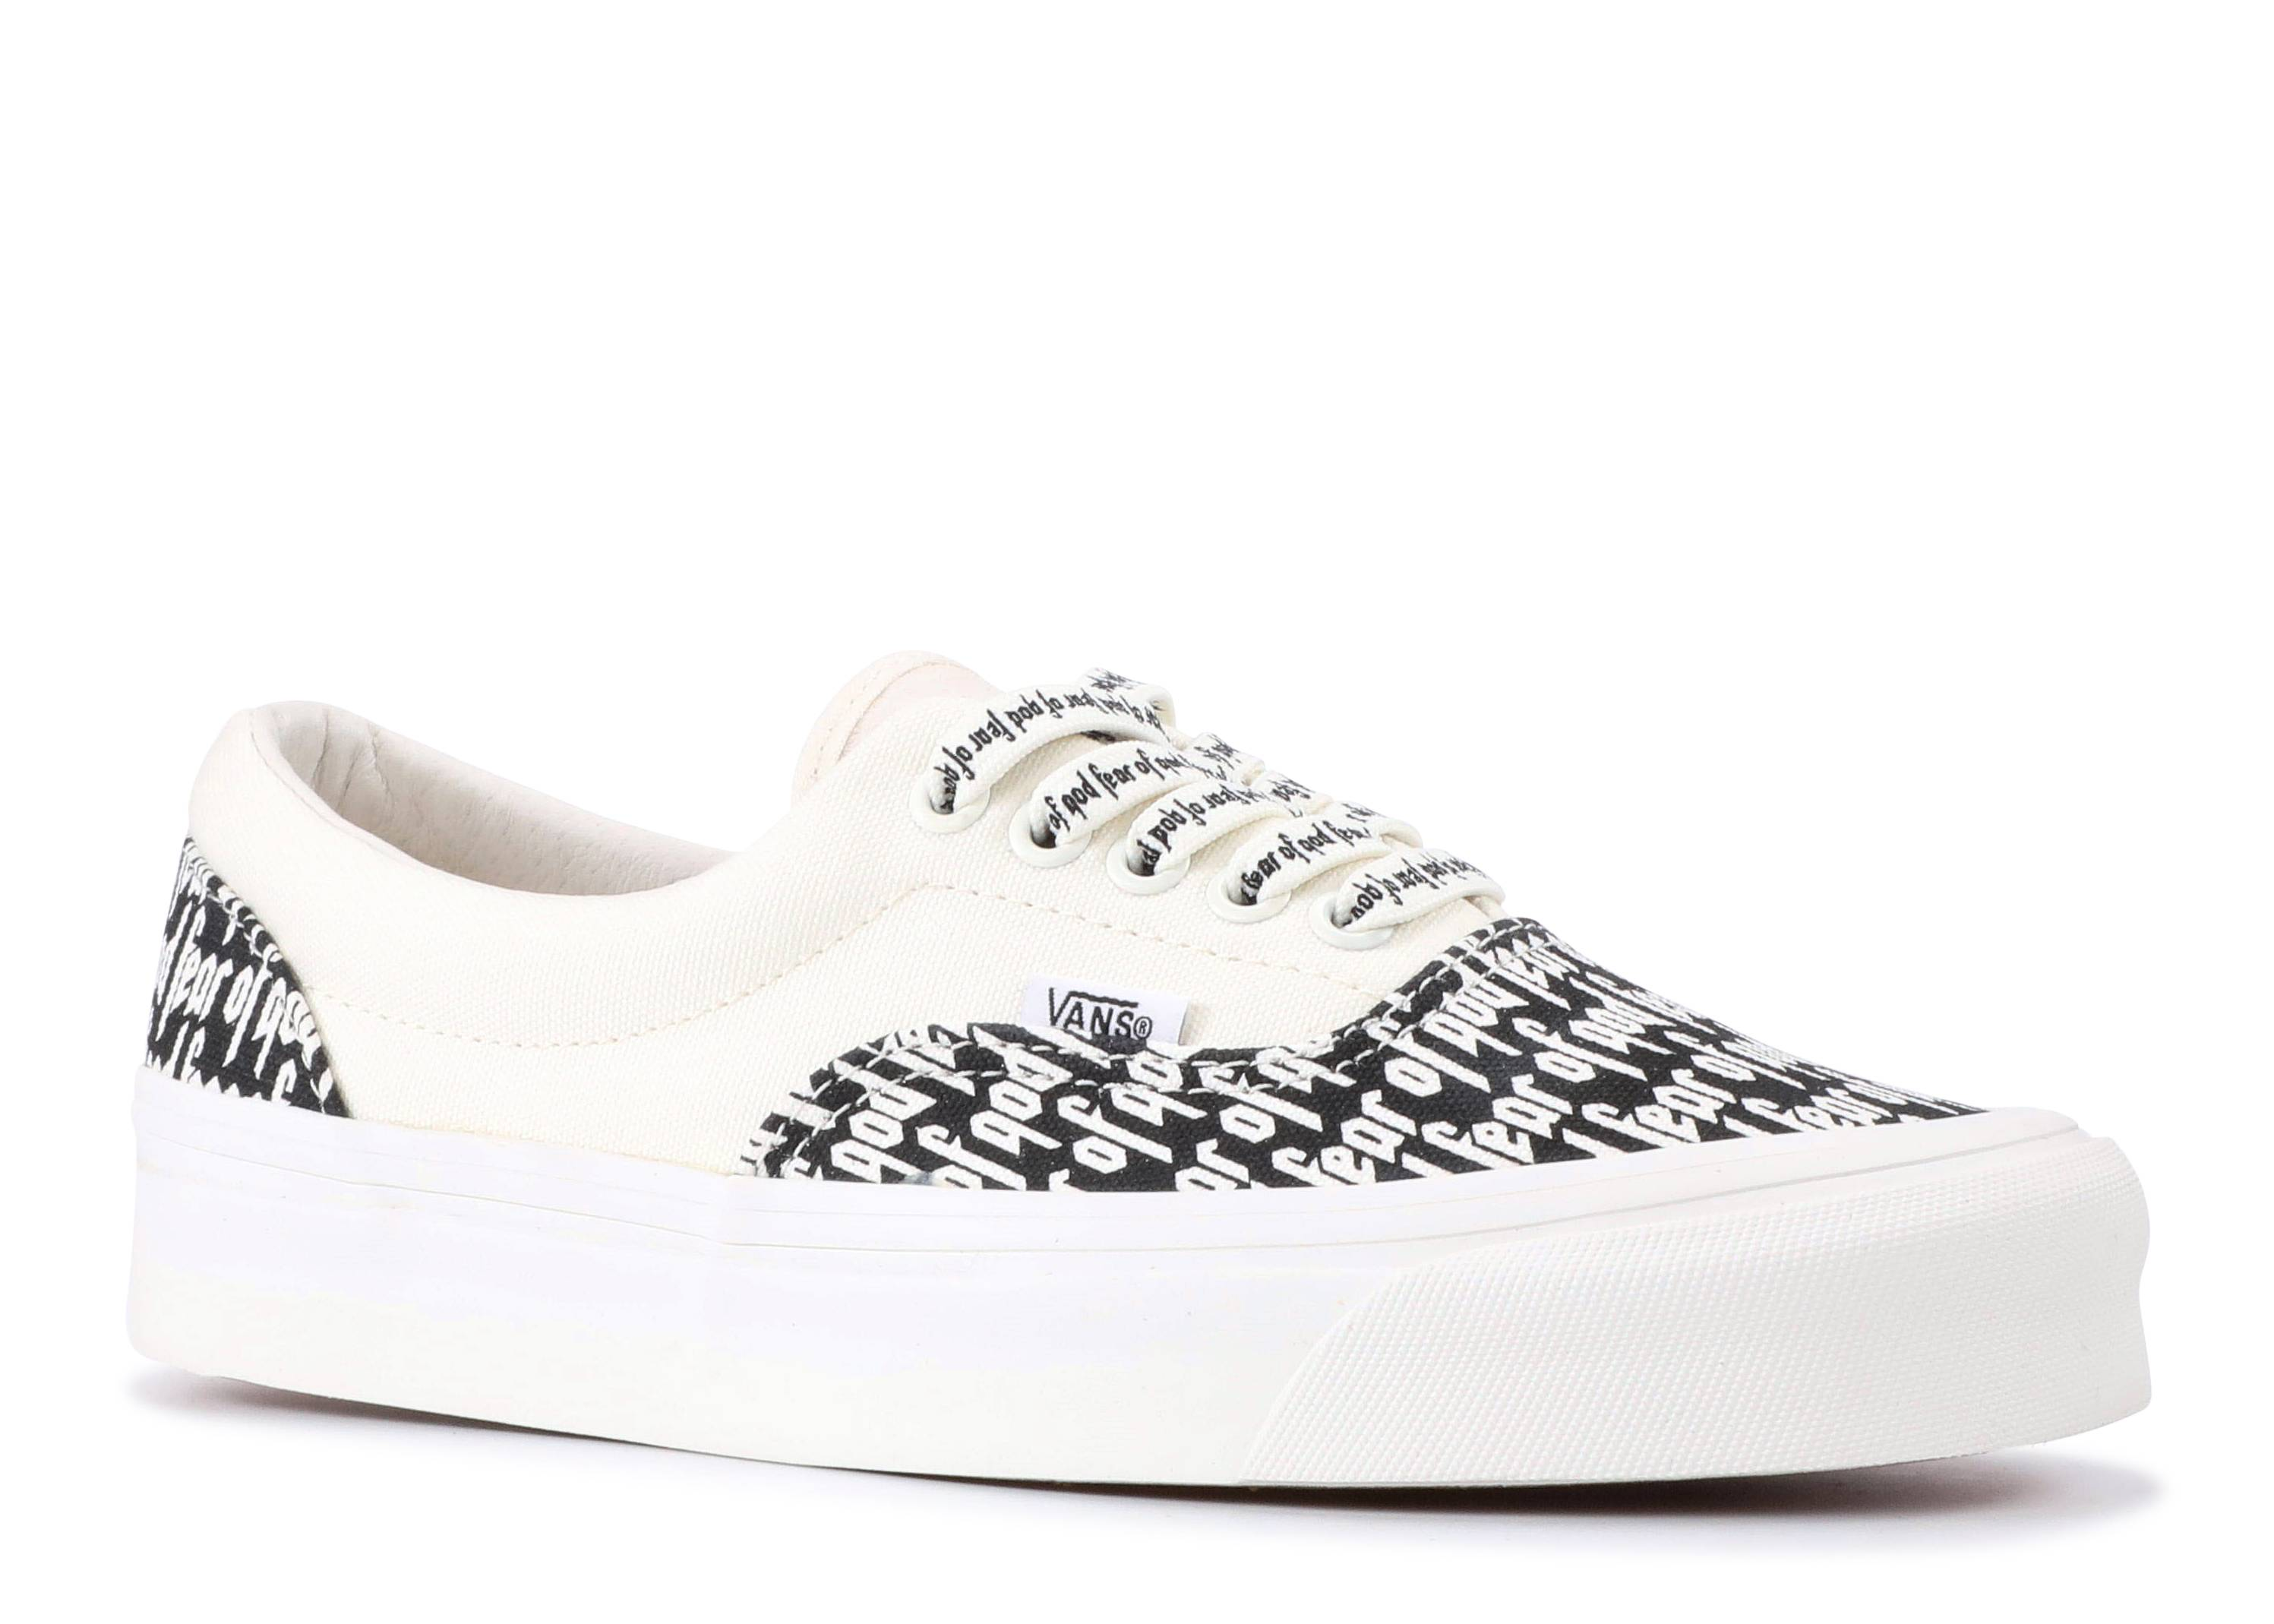 Fear Of God X Era 95 DX 'Collection 2 White' - Vans - VN0A3MQ5PZP -  marshmallow/black/print | Flight Club